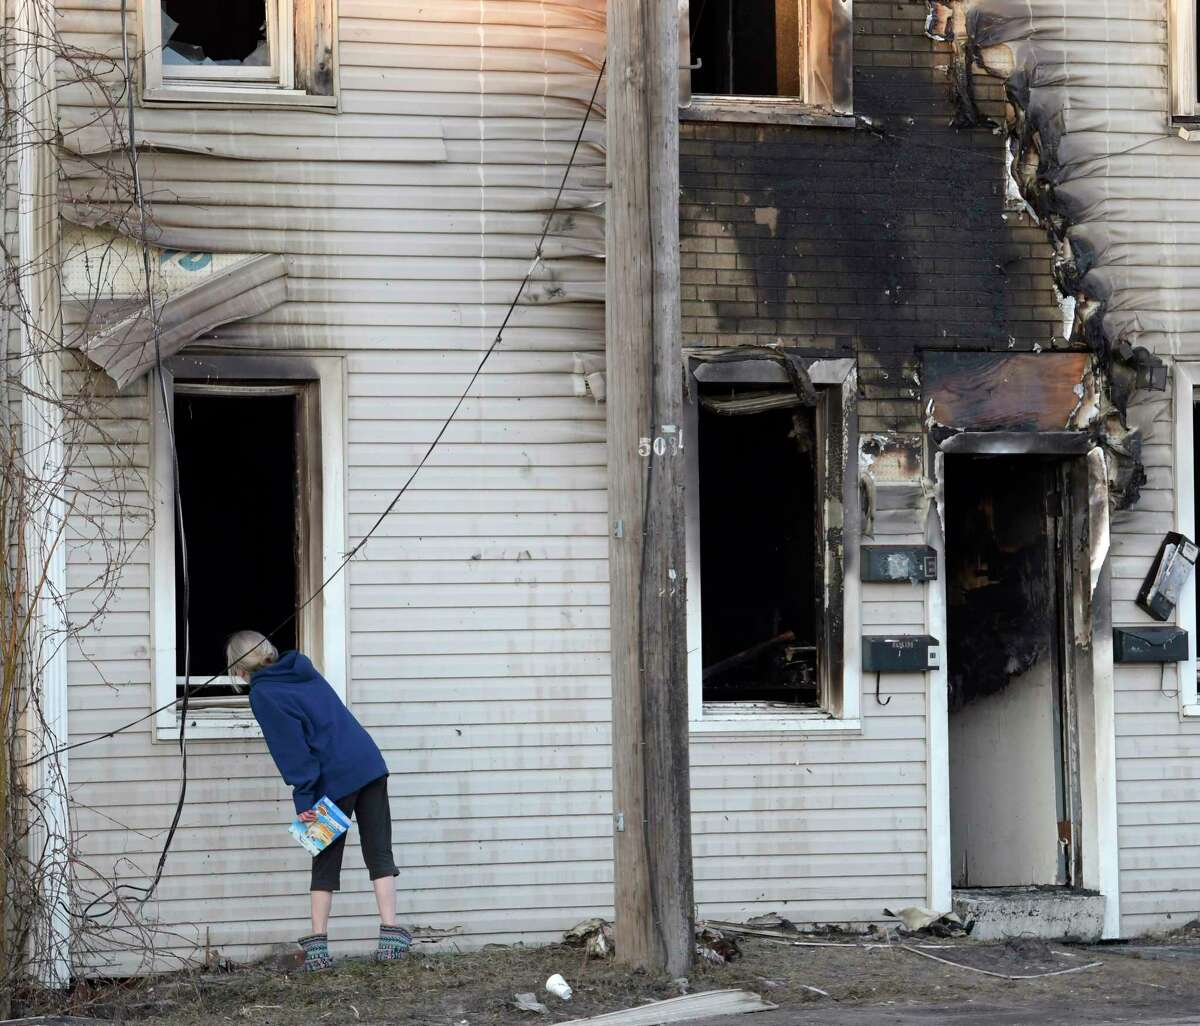 A resident of 1366 Central Avenue looks in the window of her house after a fire destroyed the dwelling Friday Mar. 4, 2017 in Colonie, N.Y. (Skip Dickstein/Times Union)